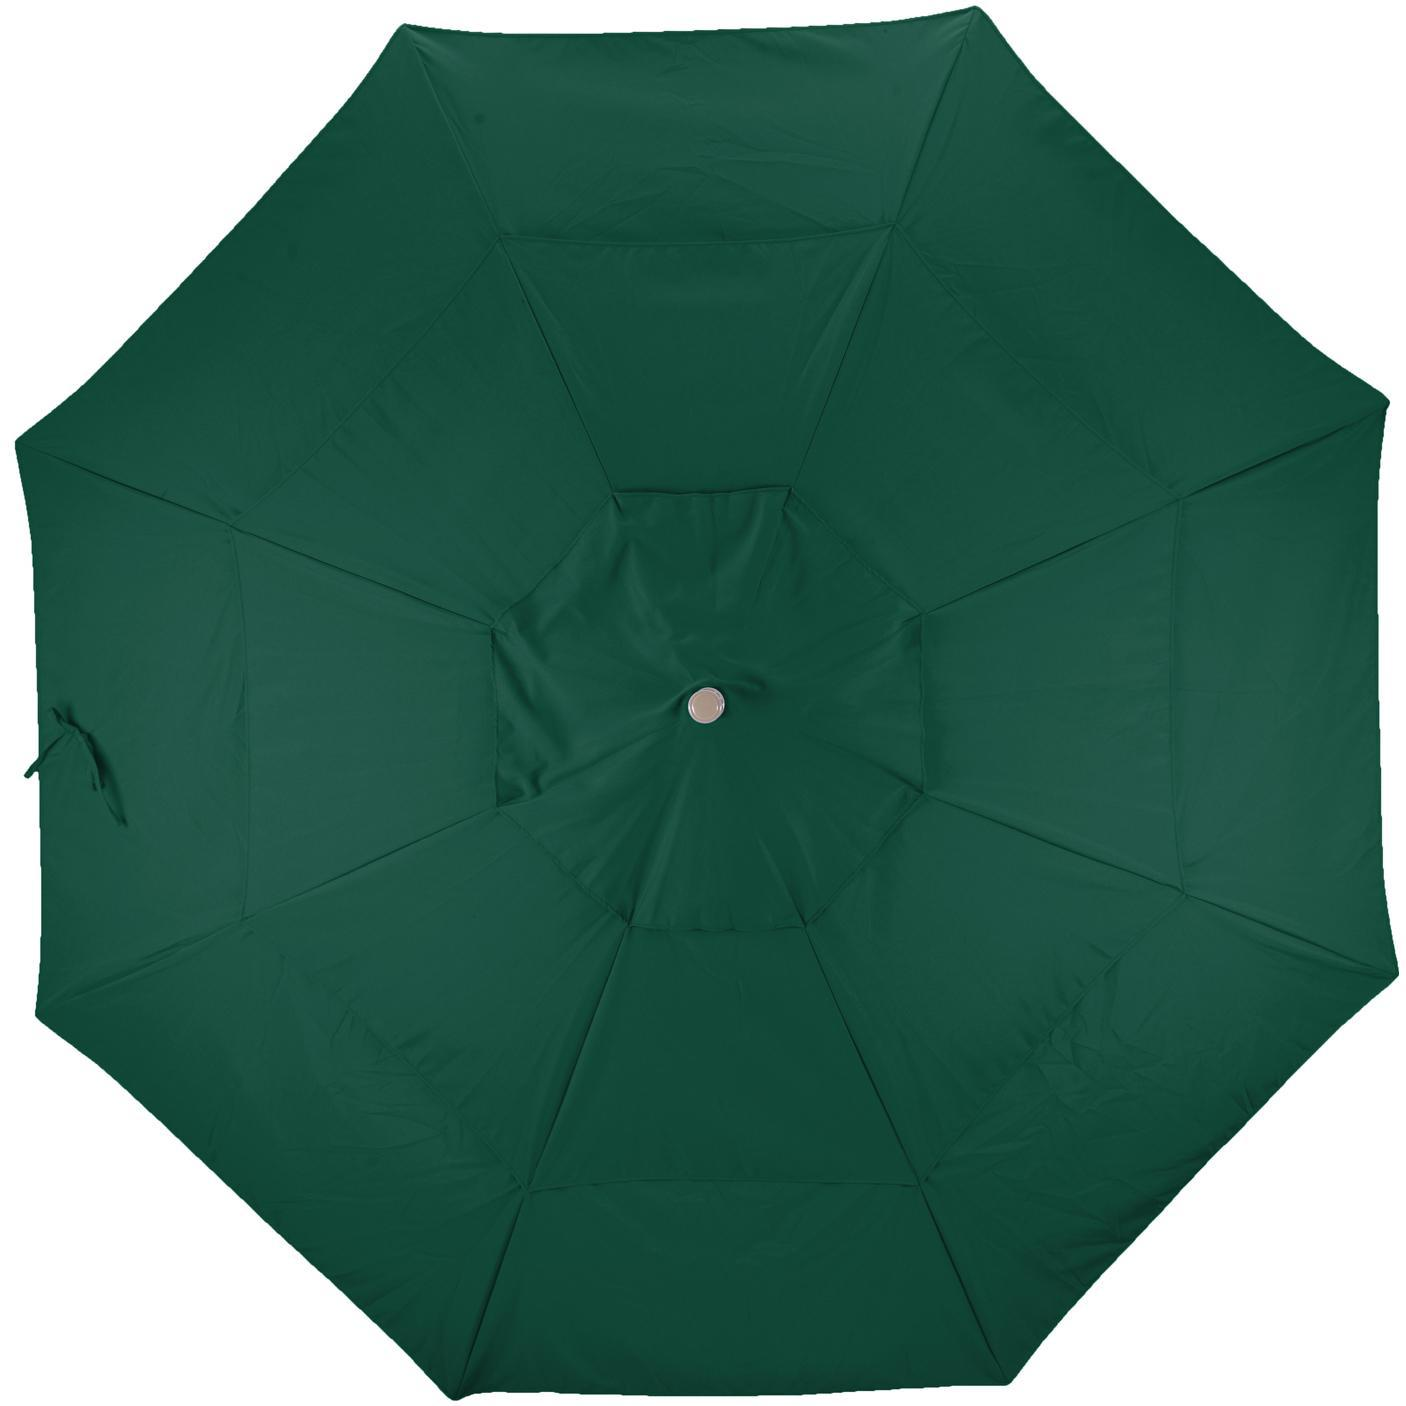 California Umbrella Sunbrella A Fabric In Forest Green 2909200